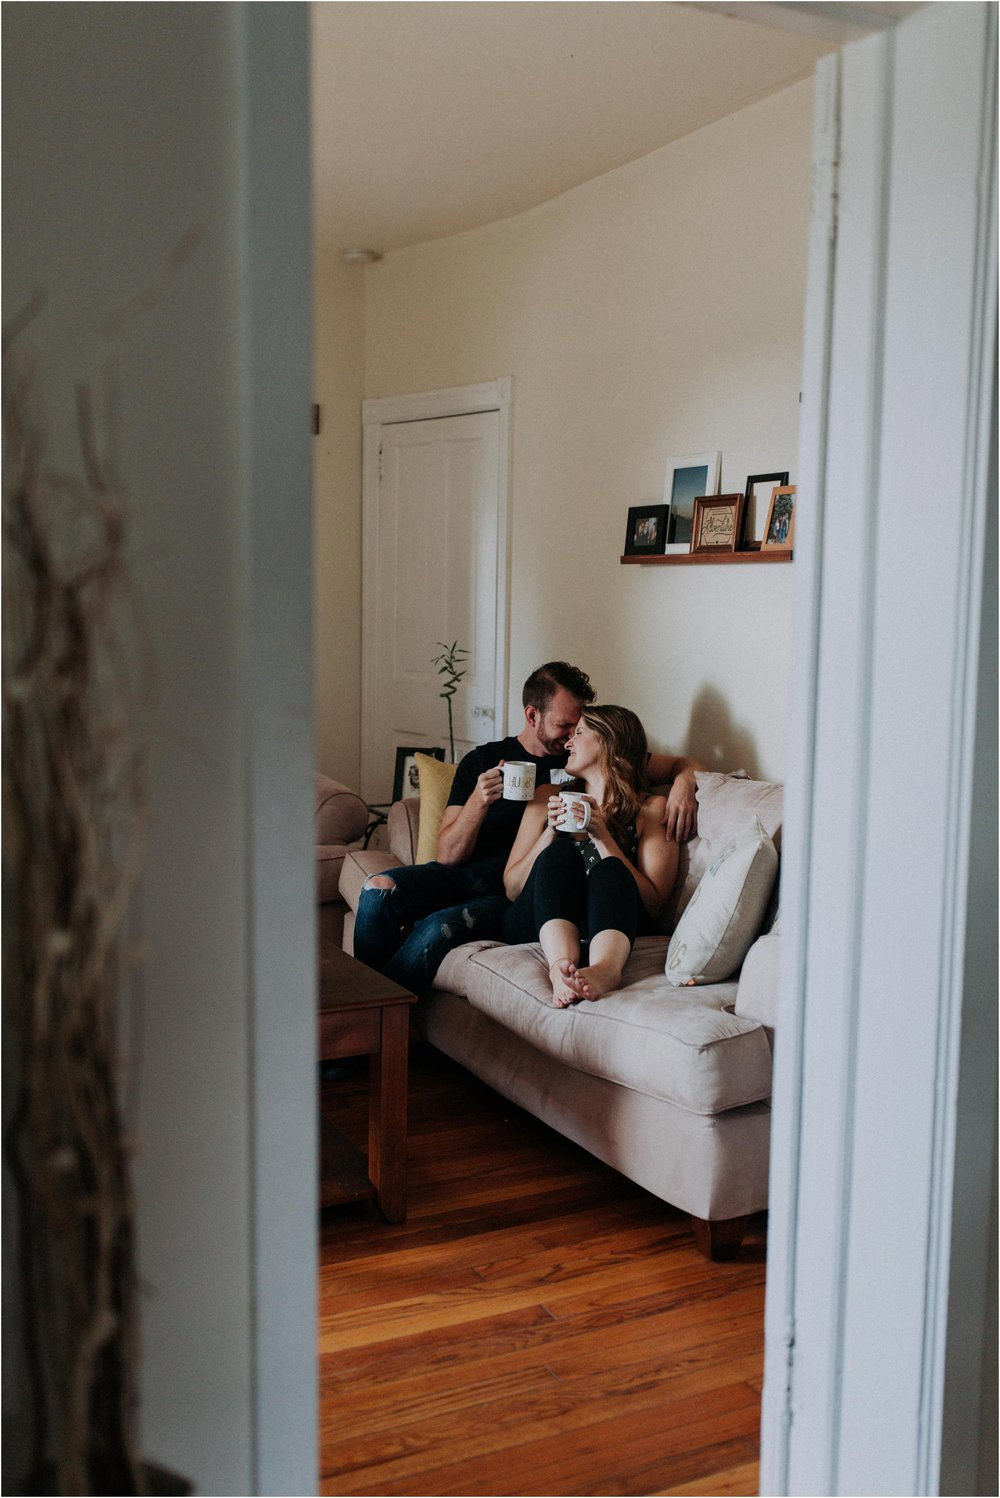 steph-reif-jordan-cox-in-home-lifestyle-engagement-session-hazel-lining-travel-wedding-elopement-photography_0057.jpg